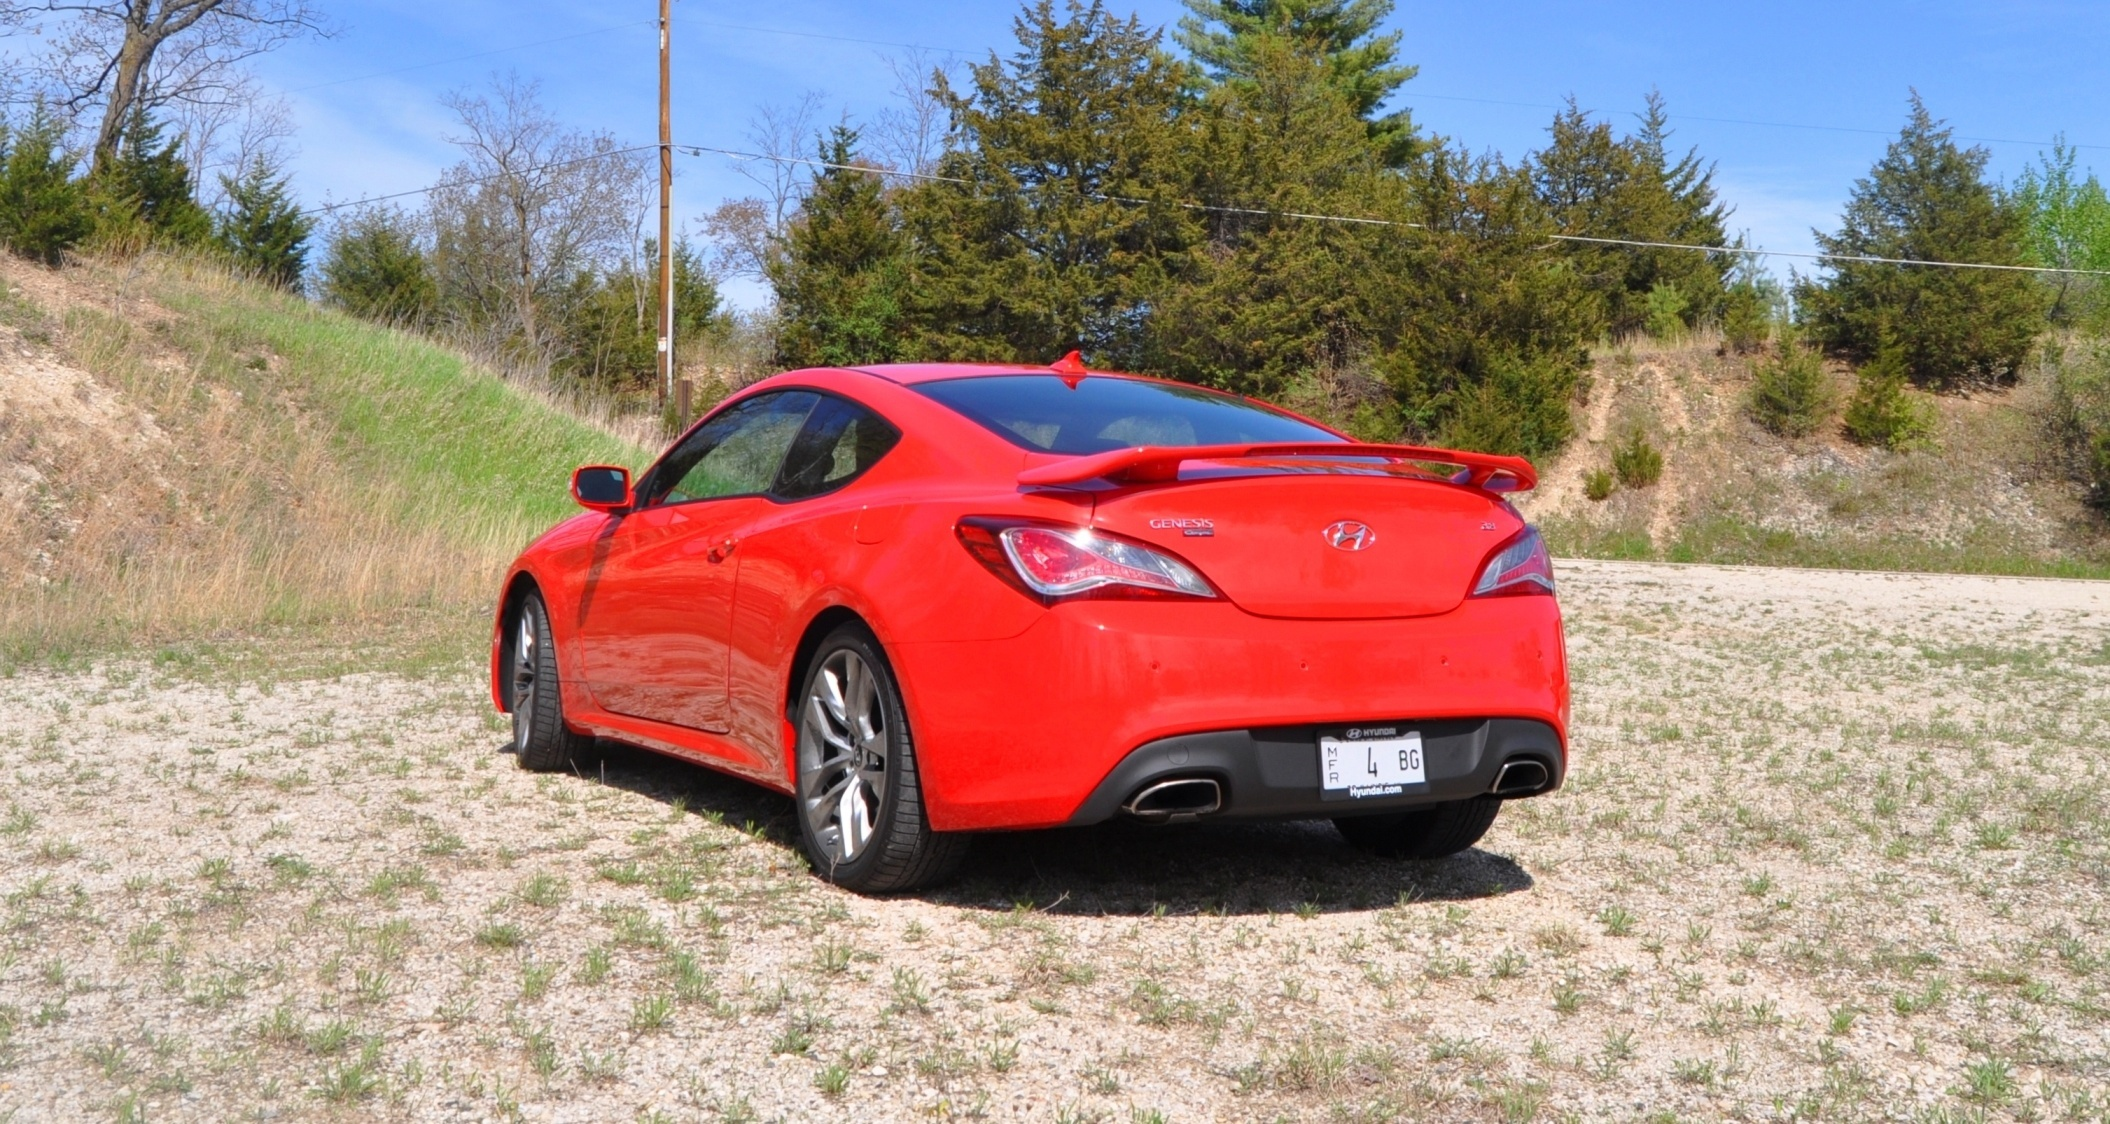 2014 hyundai genesis coupe 3 8l v6 r spec road test review of fast and fun rwd sportscar 46. Black Bedroom Furniture Sets. Home Design Ideas